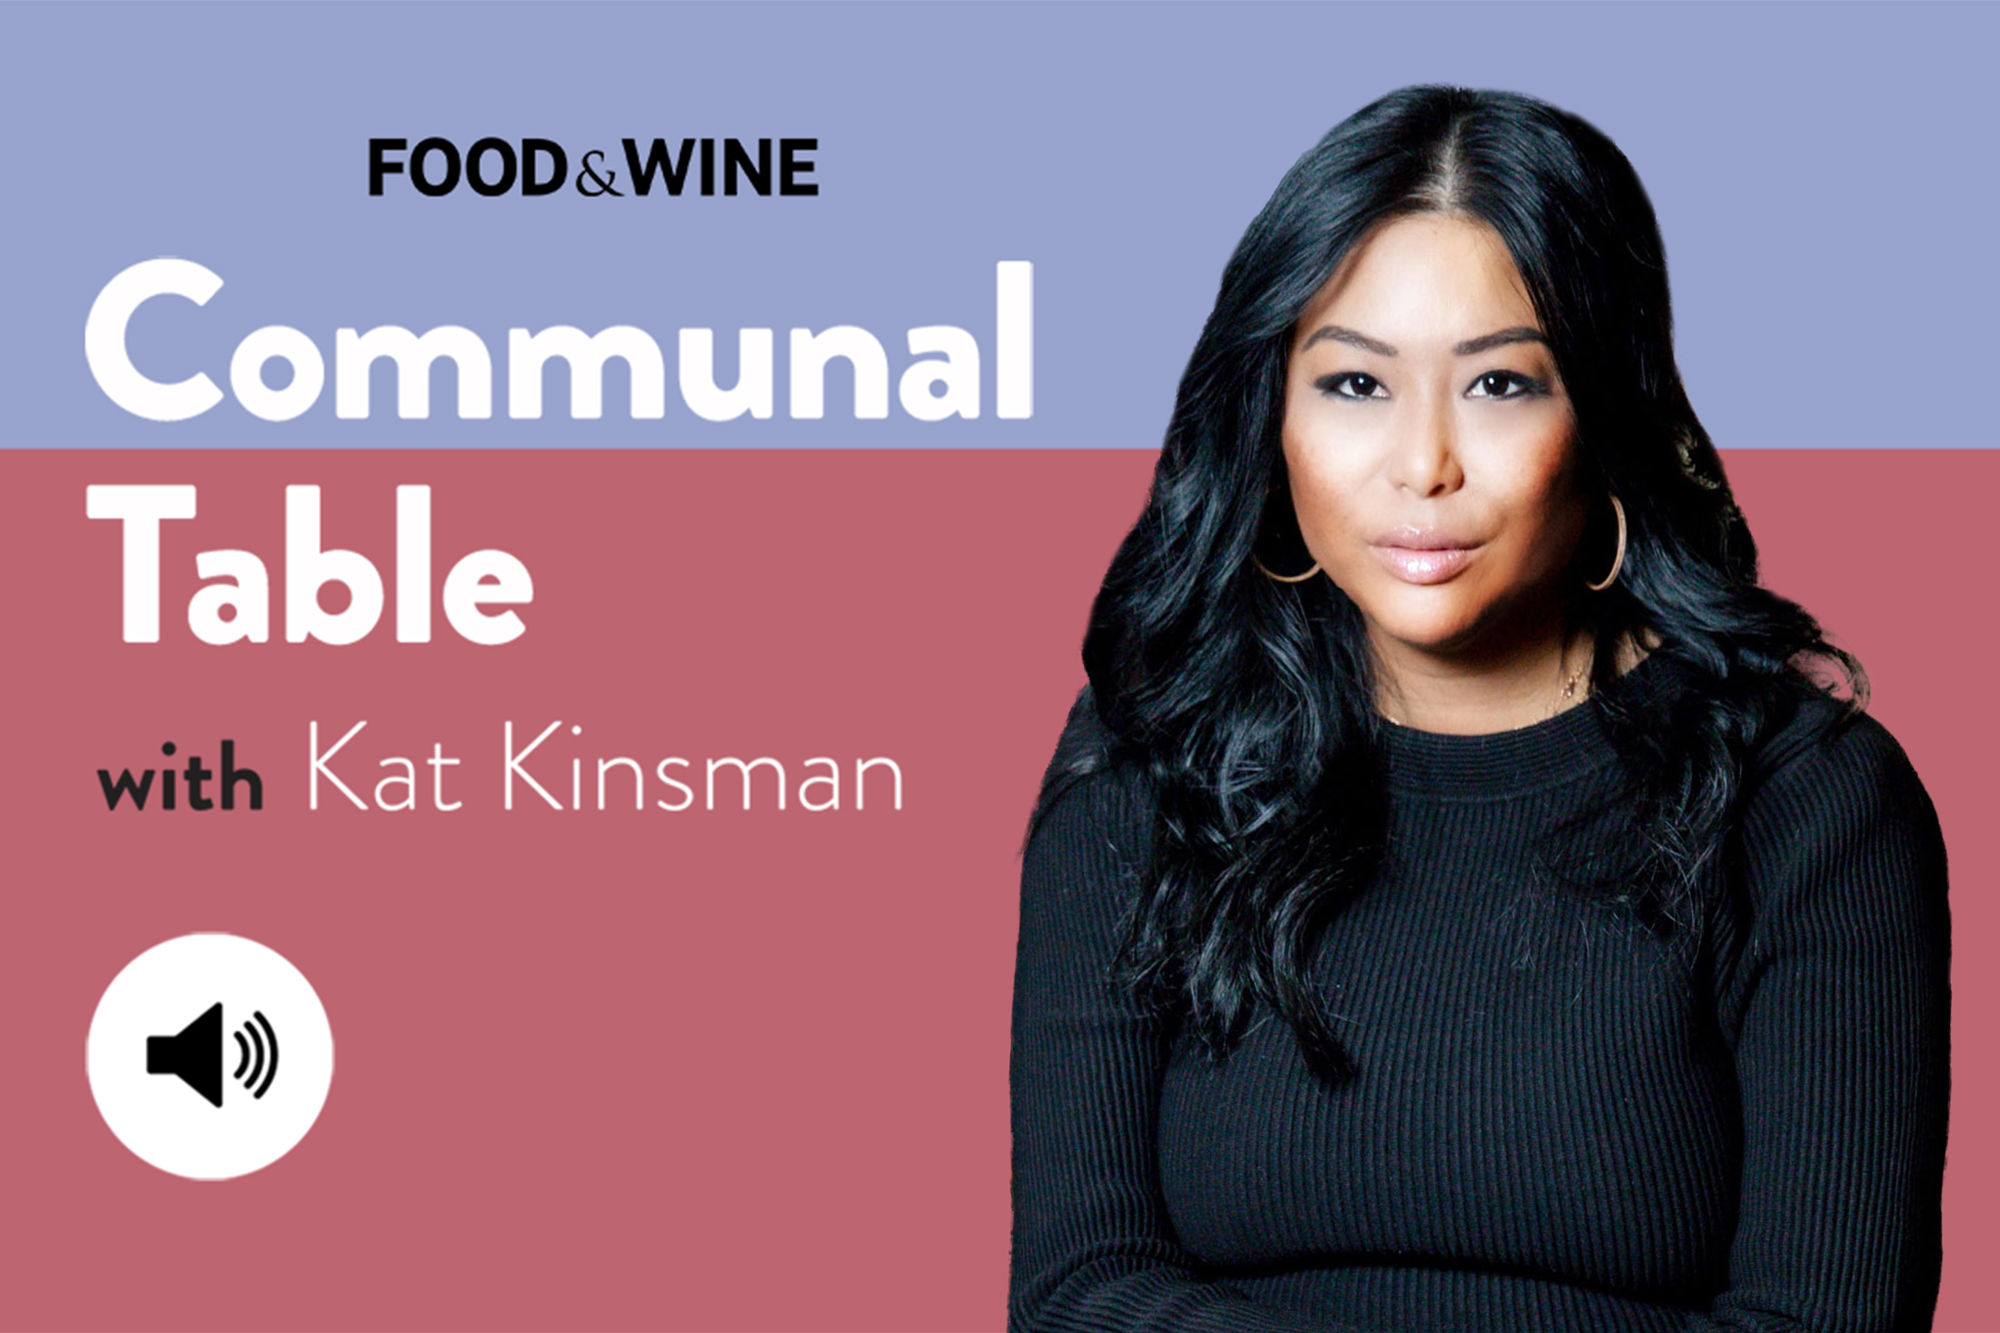 Communal Table with Kat Kinsman featuring Angie Mar